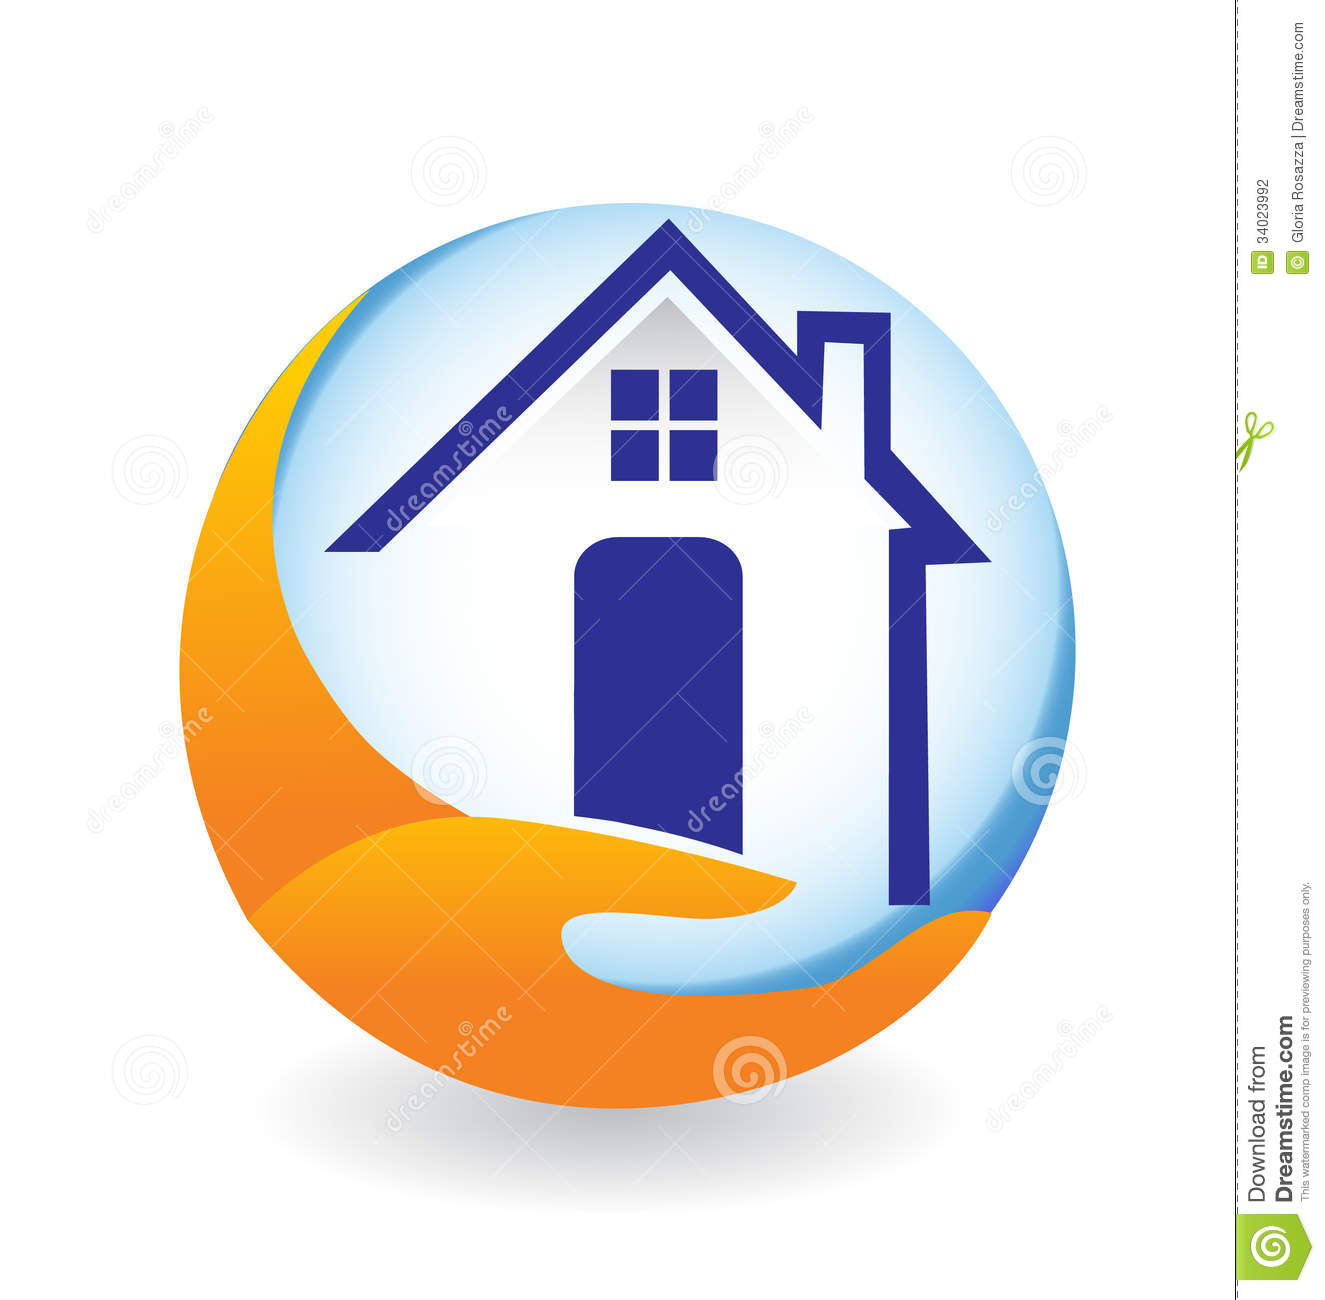 House logo stock photography image 34023992 for Household design company